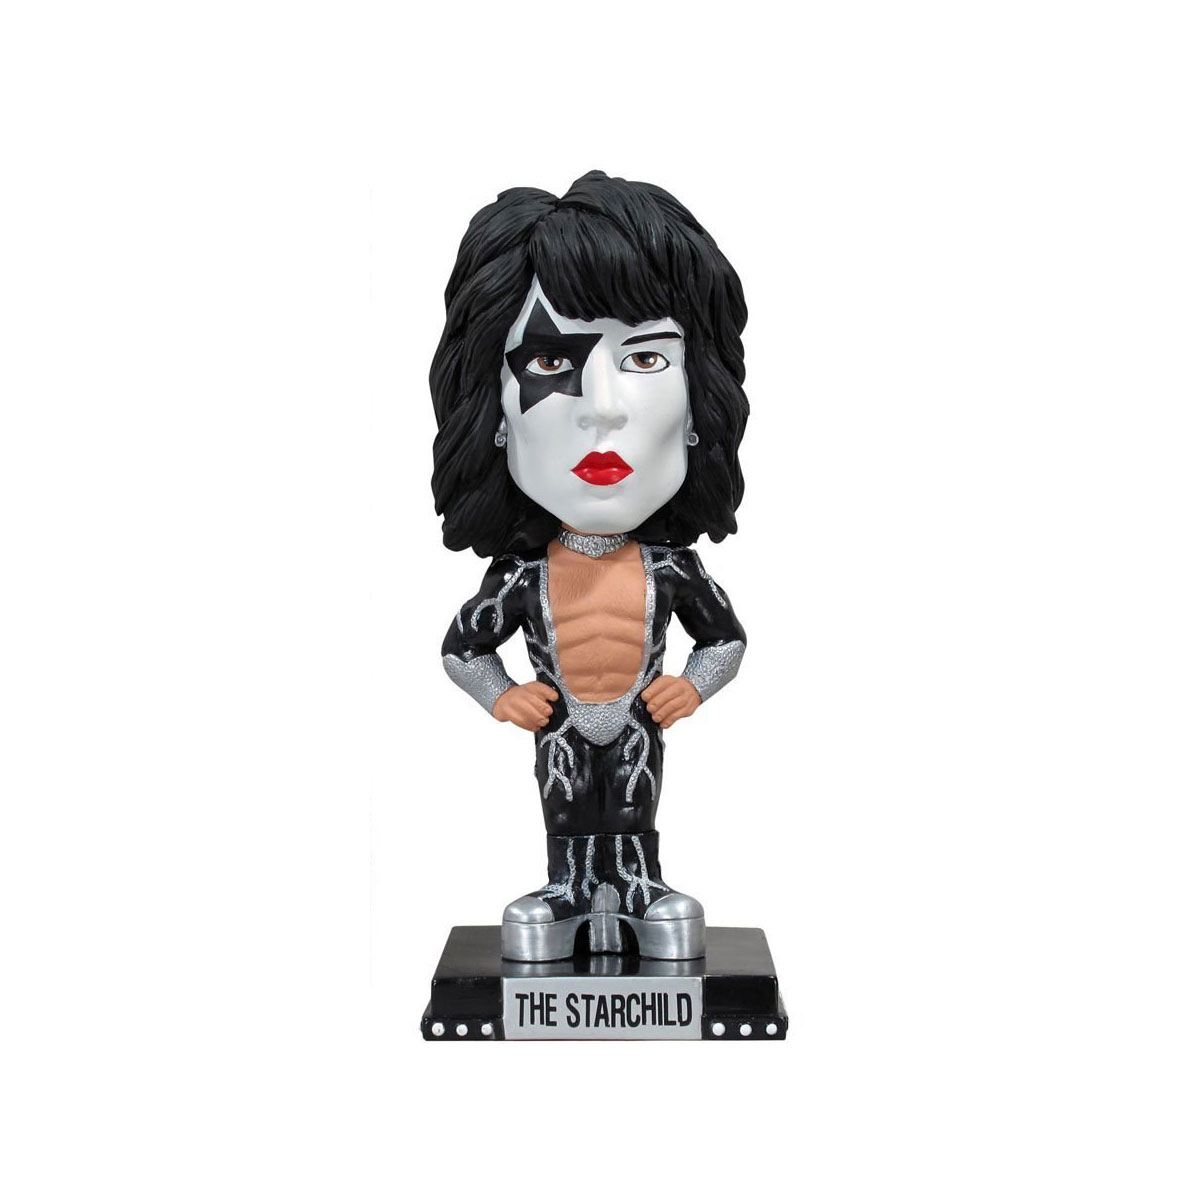 Boneco Bobble-Head Kiss The Starchild